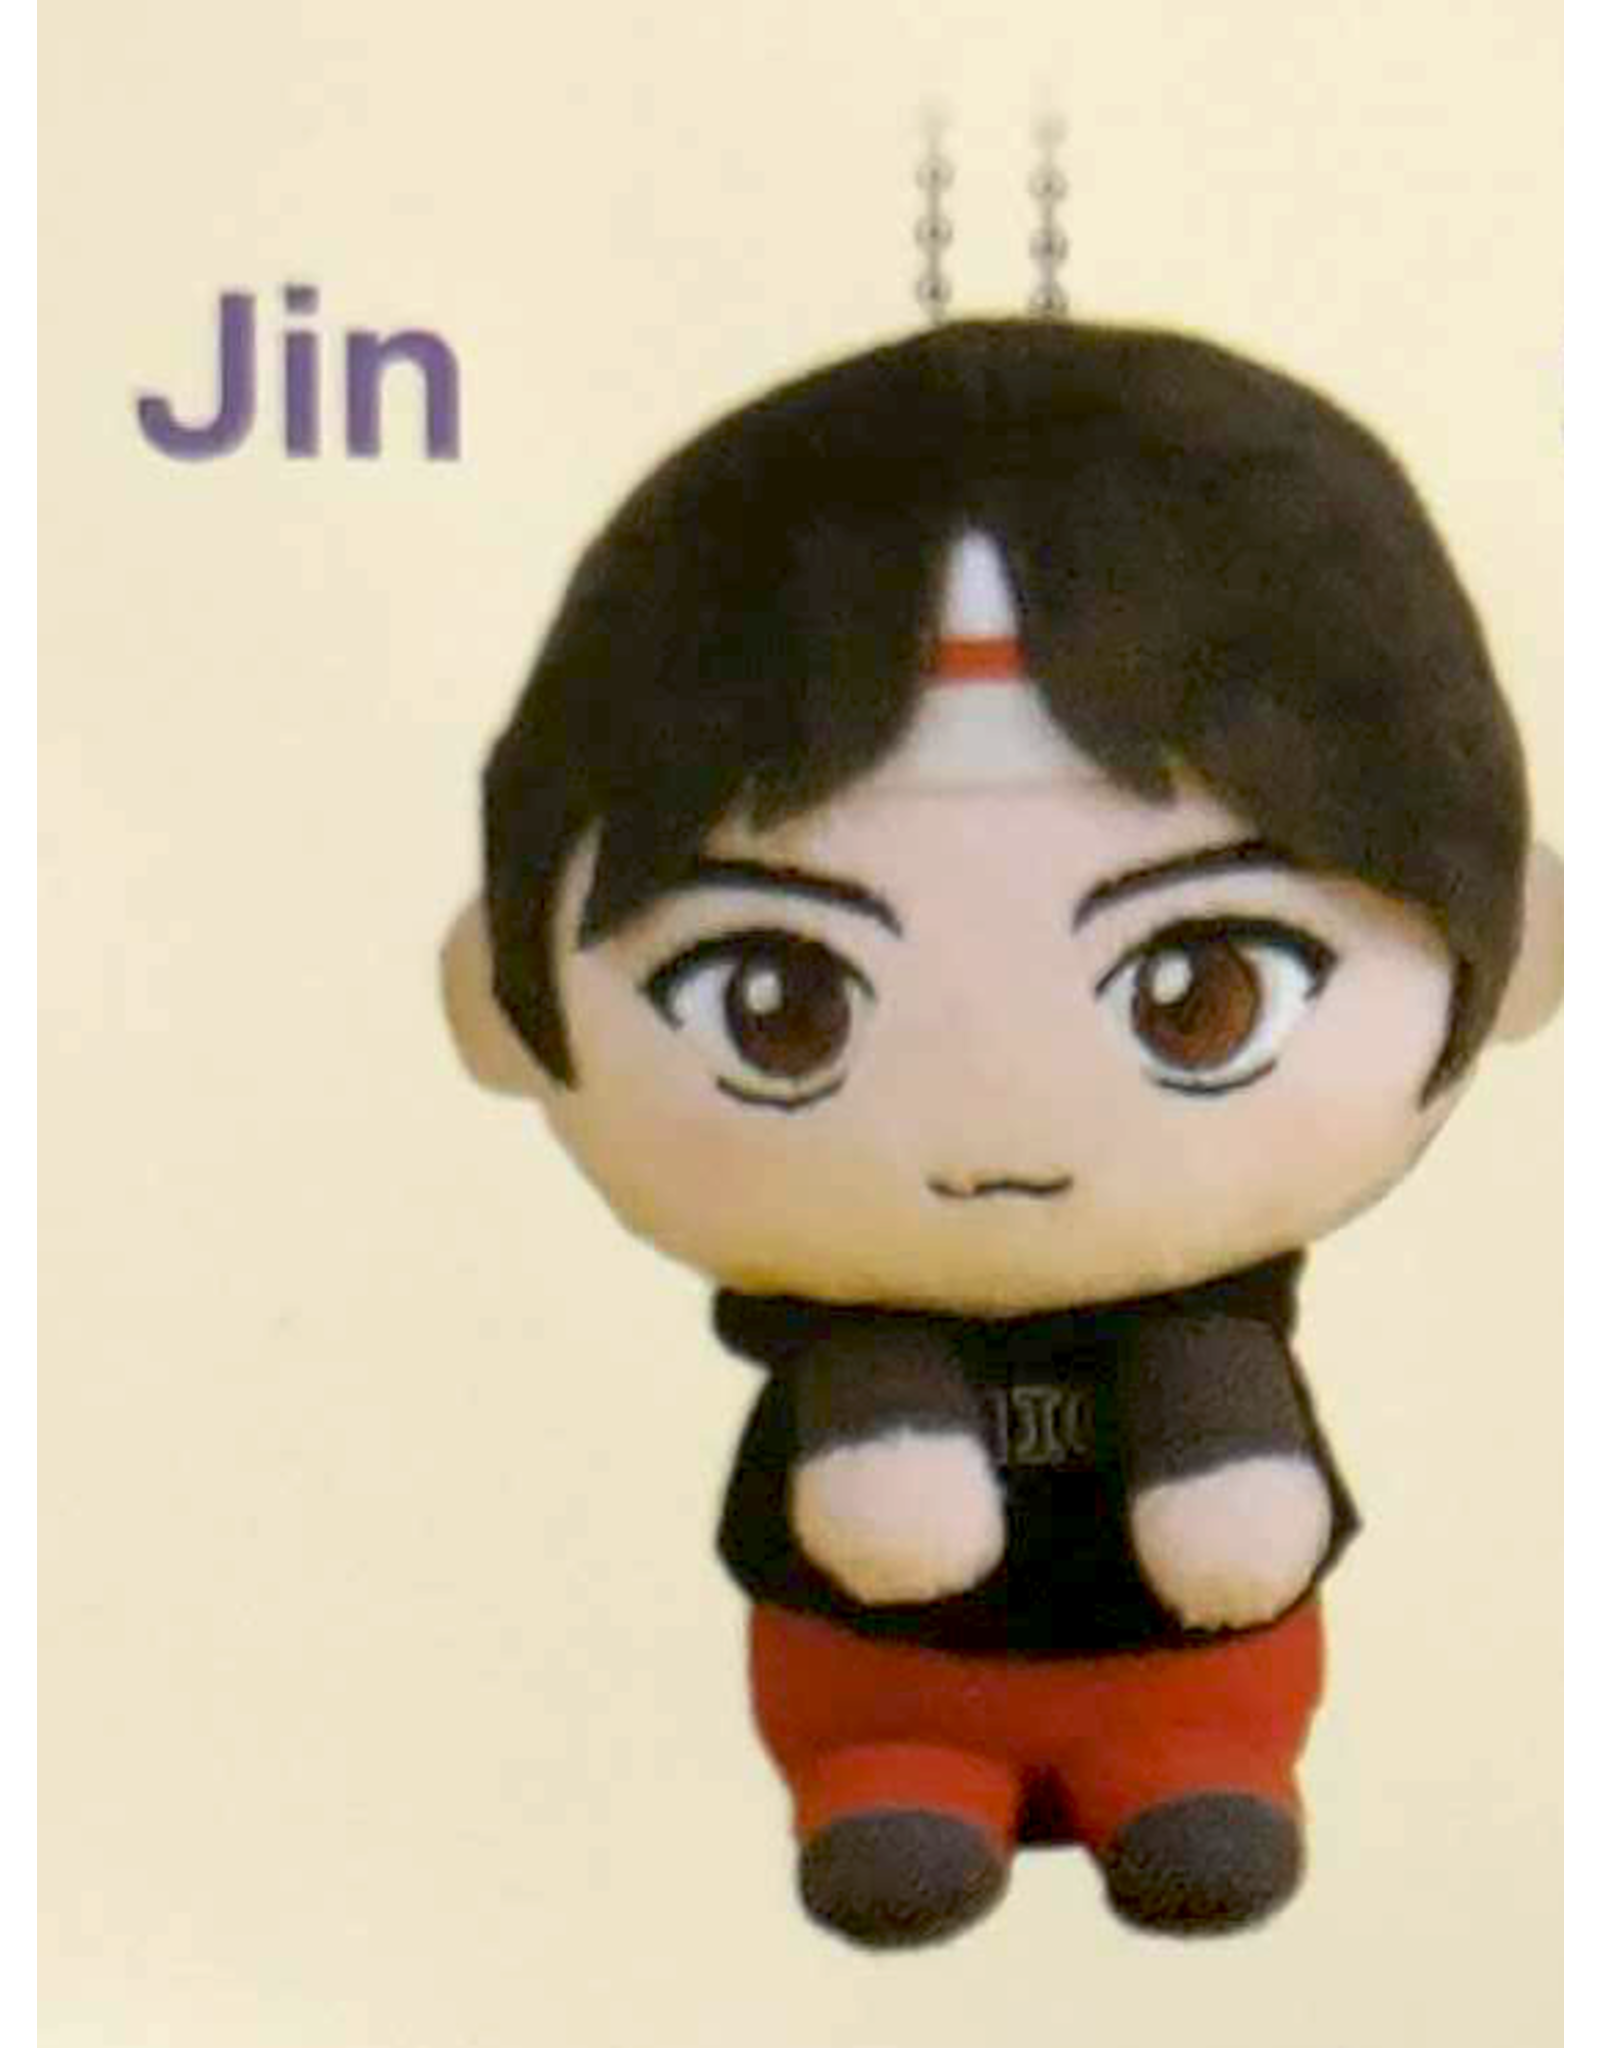 TinyTan & You - Extraction Mascot BTS Keychain Plushie - 12 cm - Jin